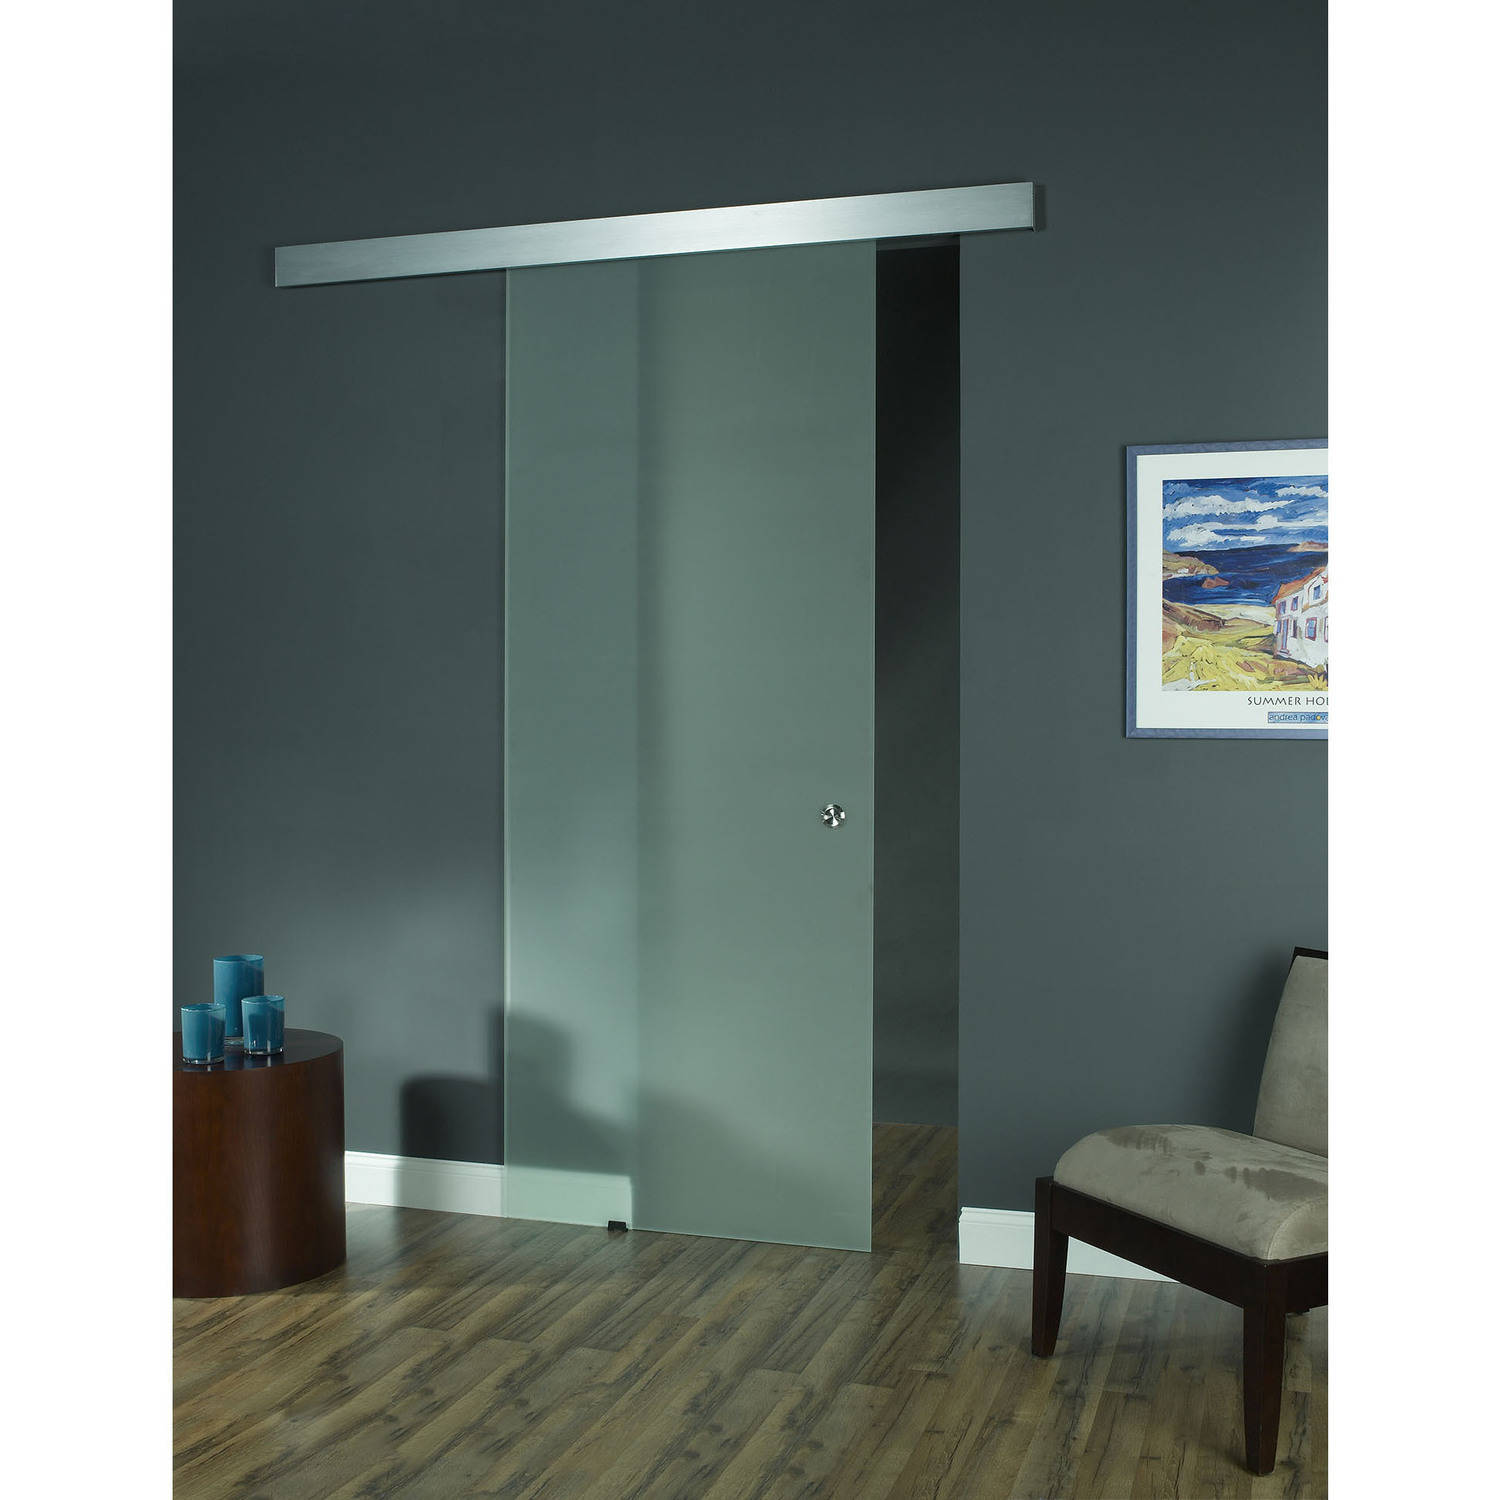 Exterior Glass Barn Doors glass barn door, opaque - walmart